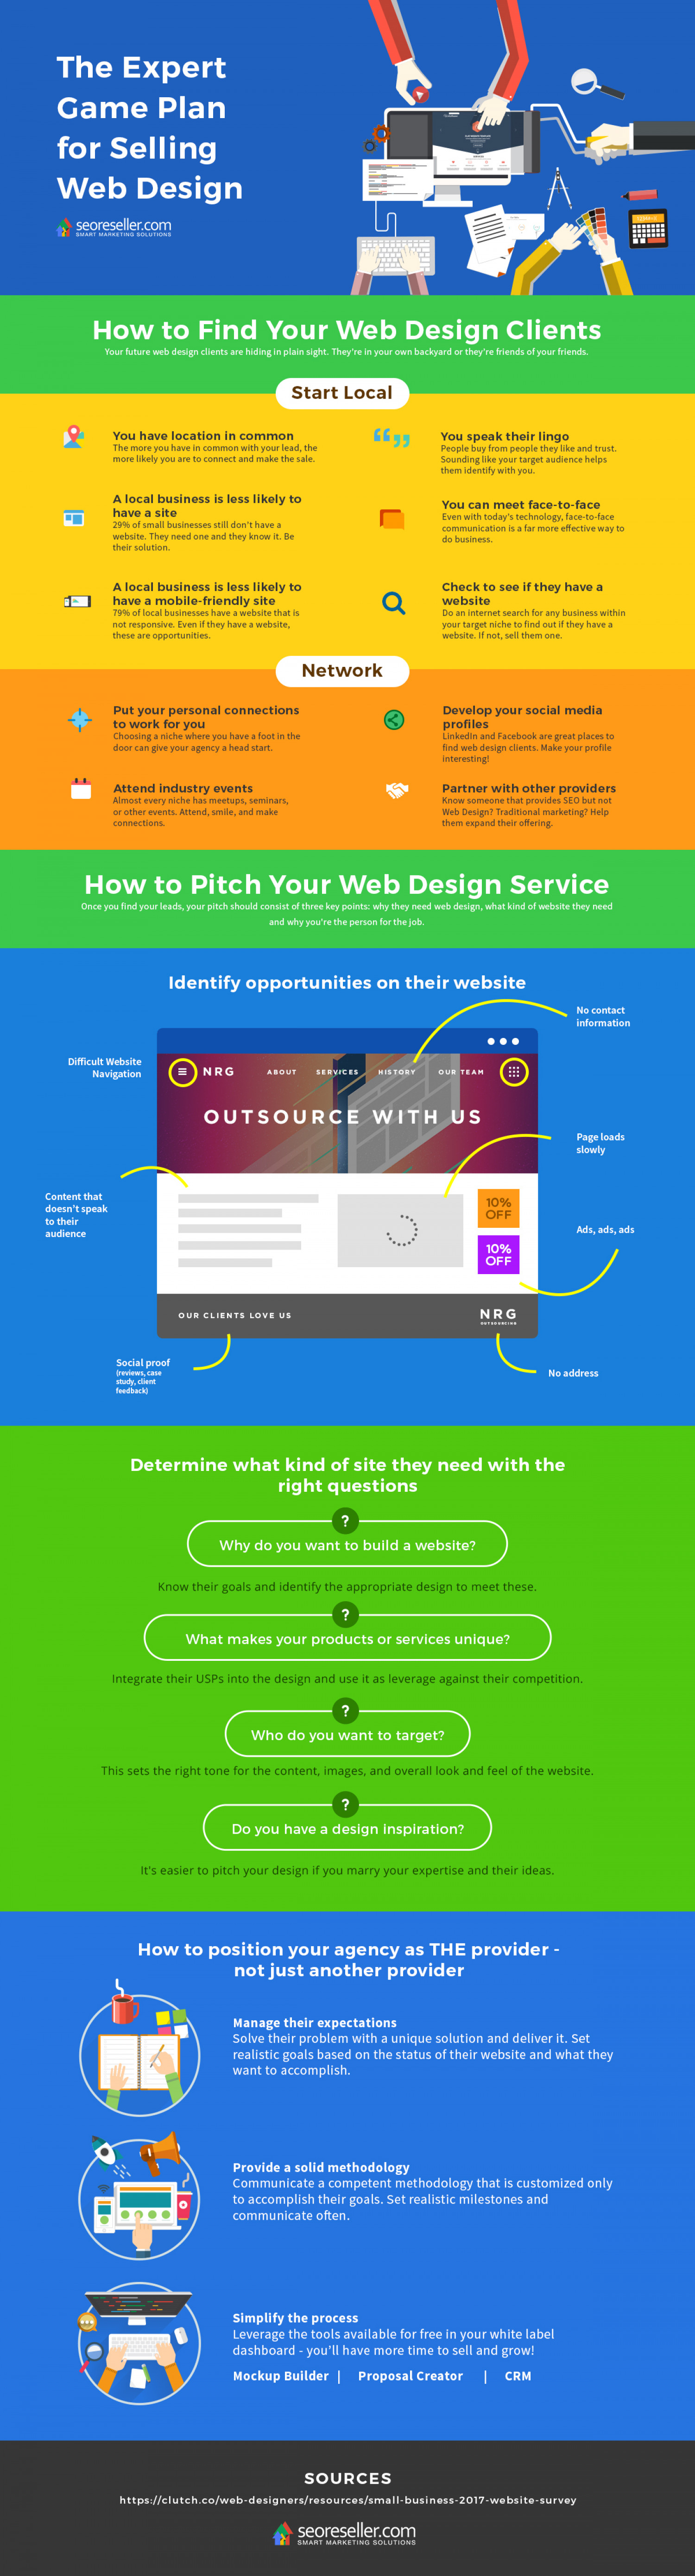 The Expert Game Plan For Selling Web Design Infographic Web Design Web Design Infographic Web Design Tips